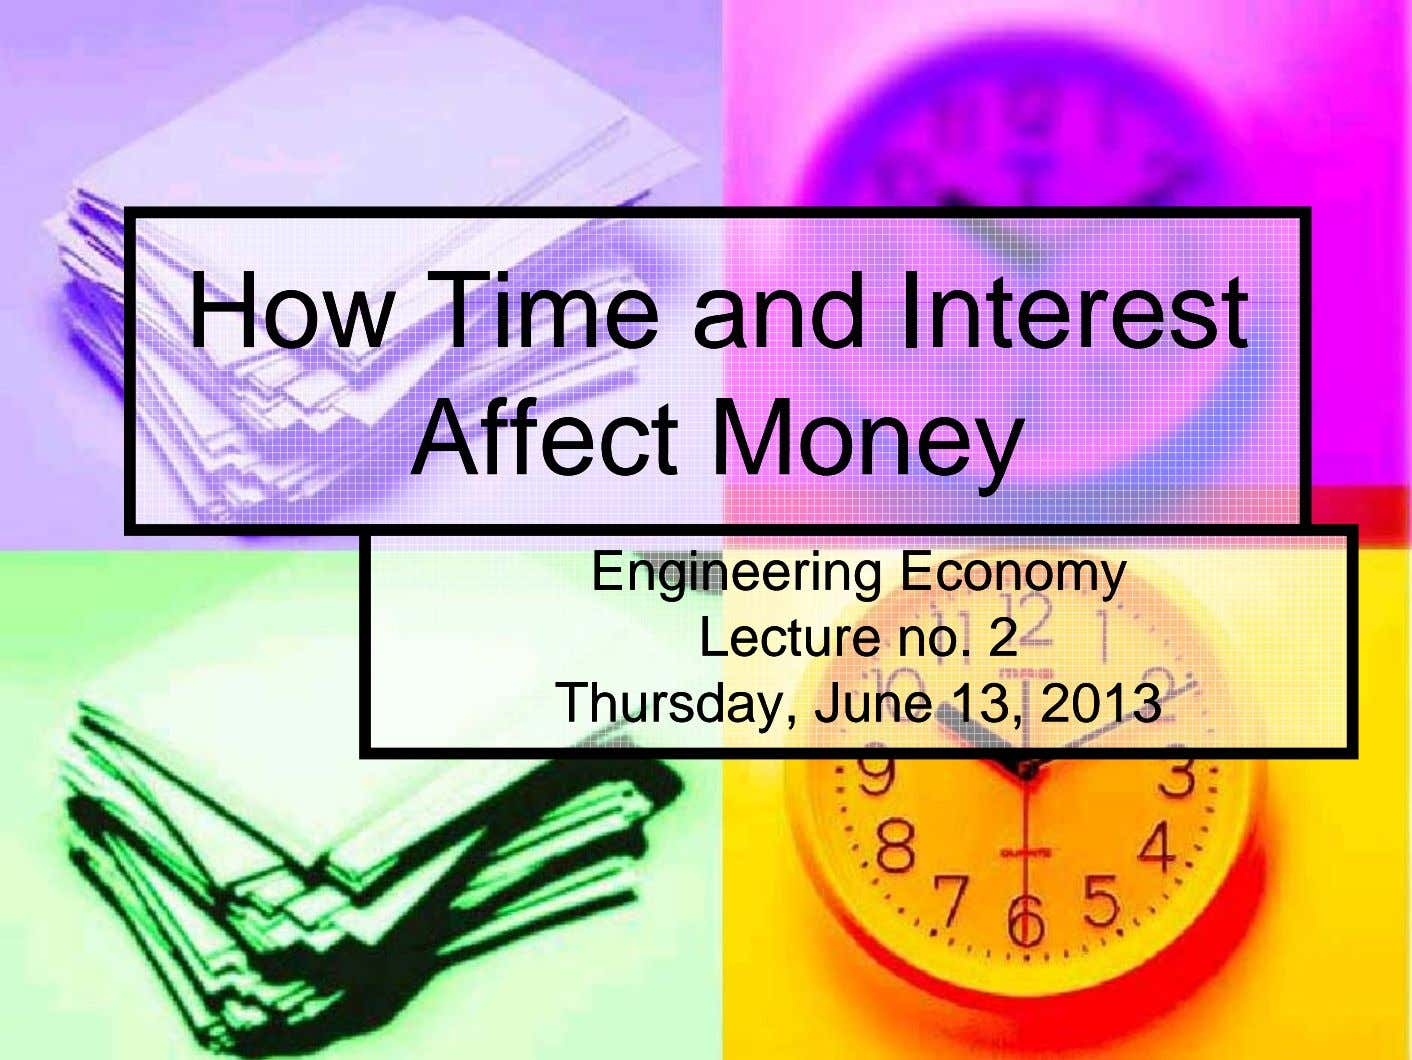 HowHow TimeTime andand InterestInterest AffectAffect MoneMoneyy EngineeringEngineering EconomyEconomy LectureLecture